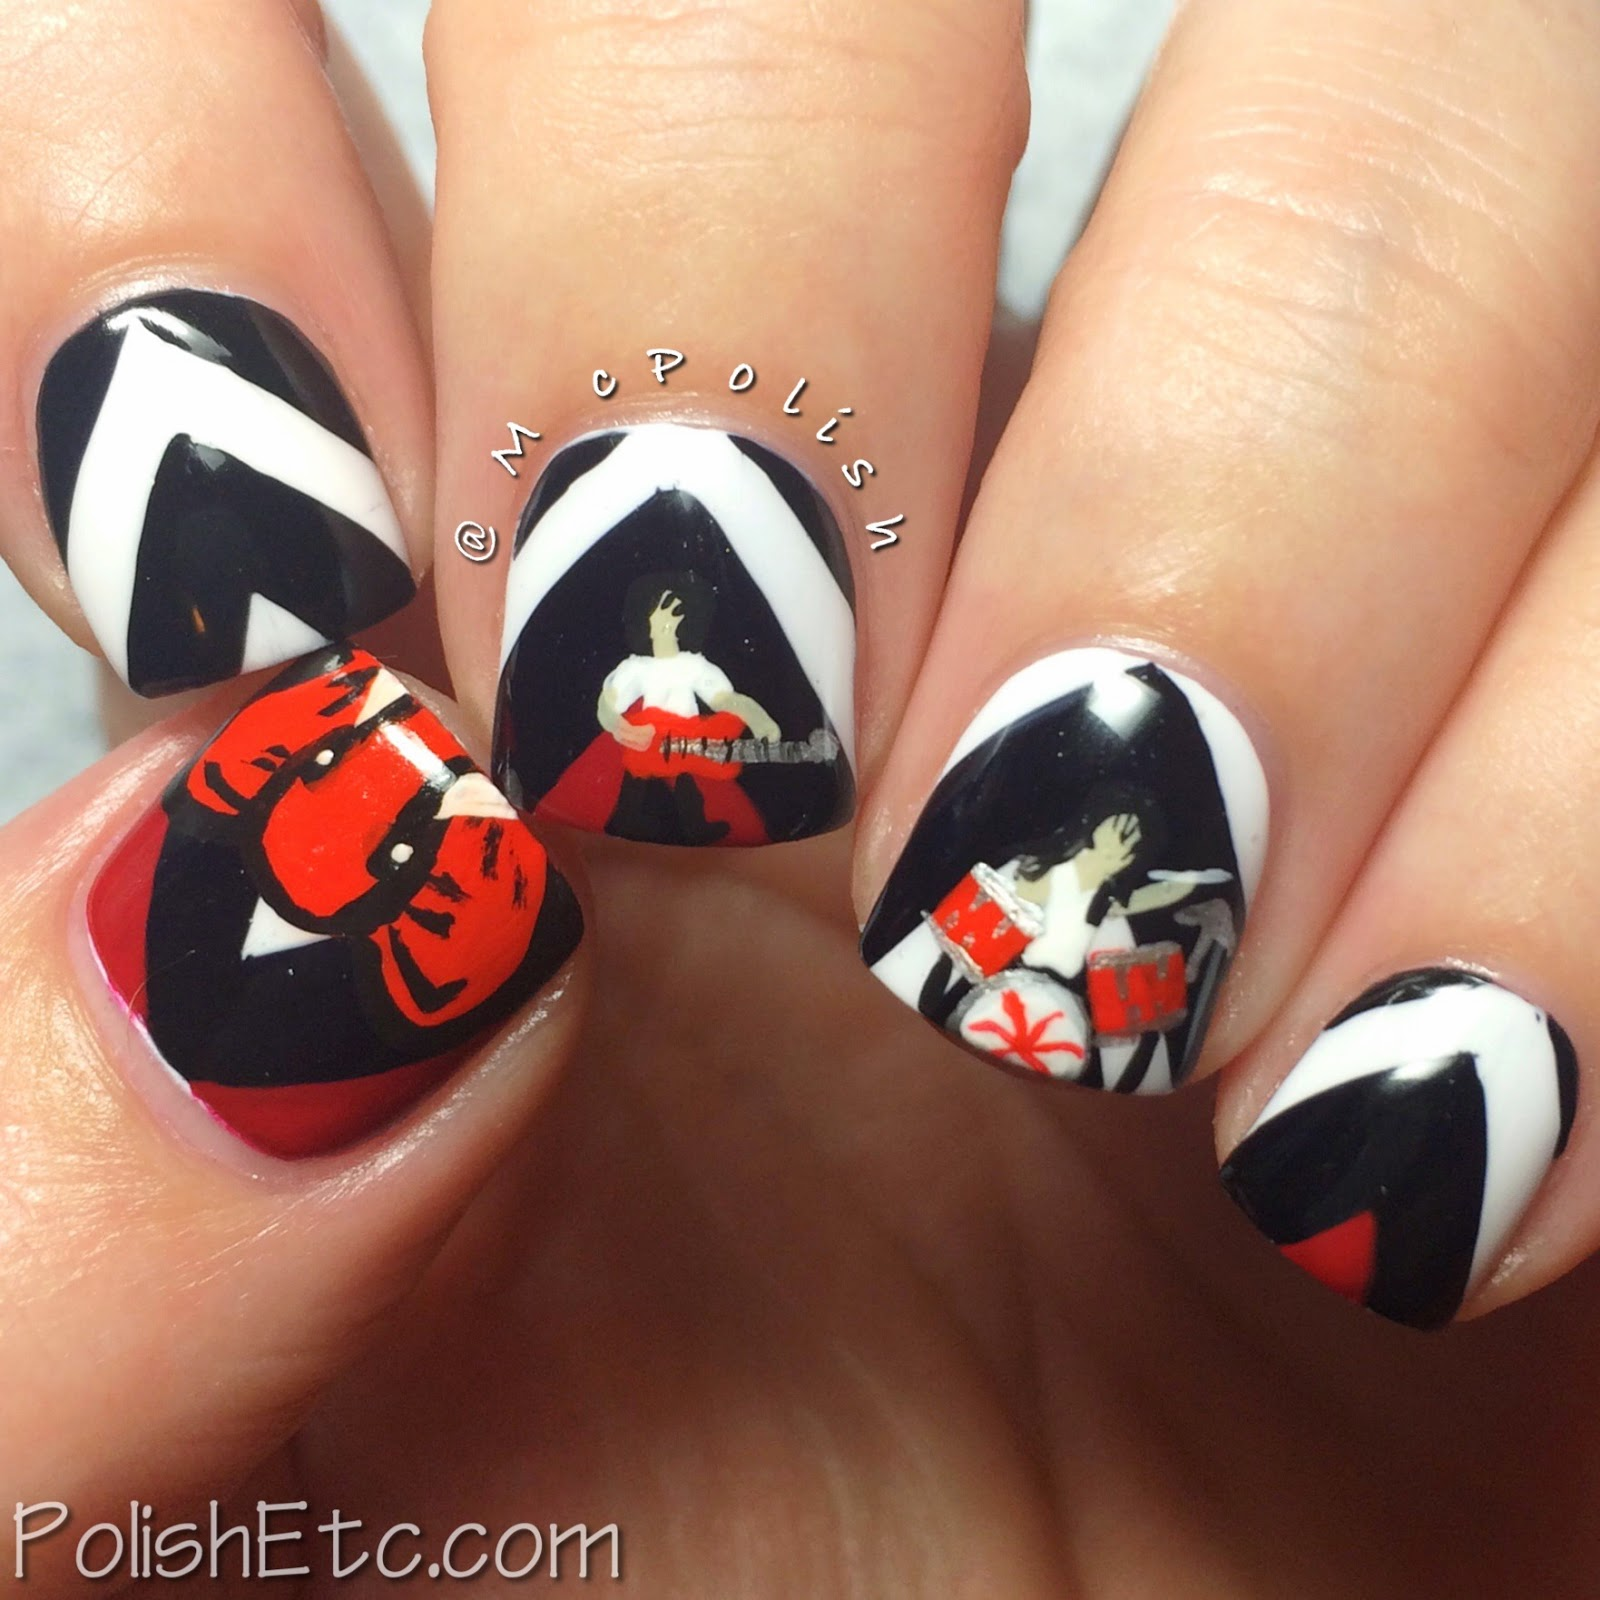 31 Day Nail Art Challenge -#31dc2014 - McPolish - SONG